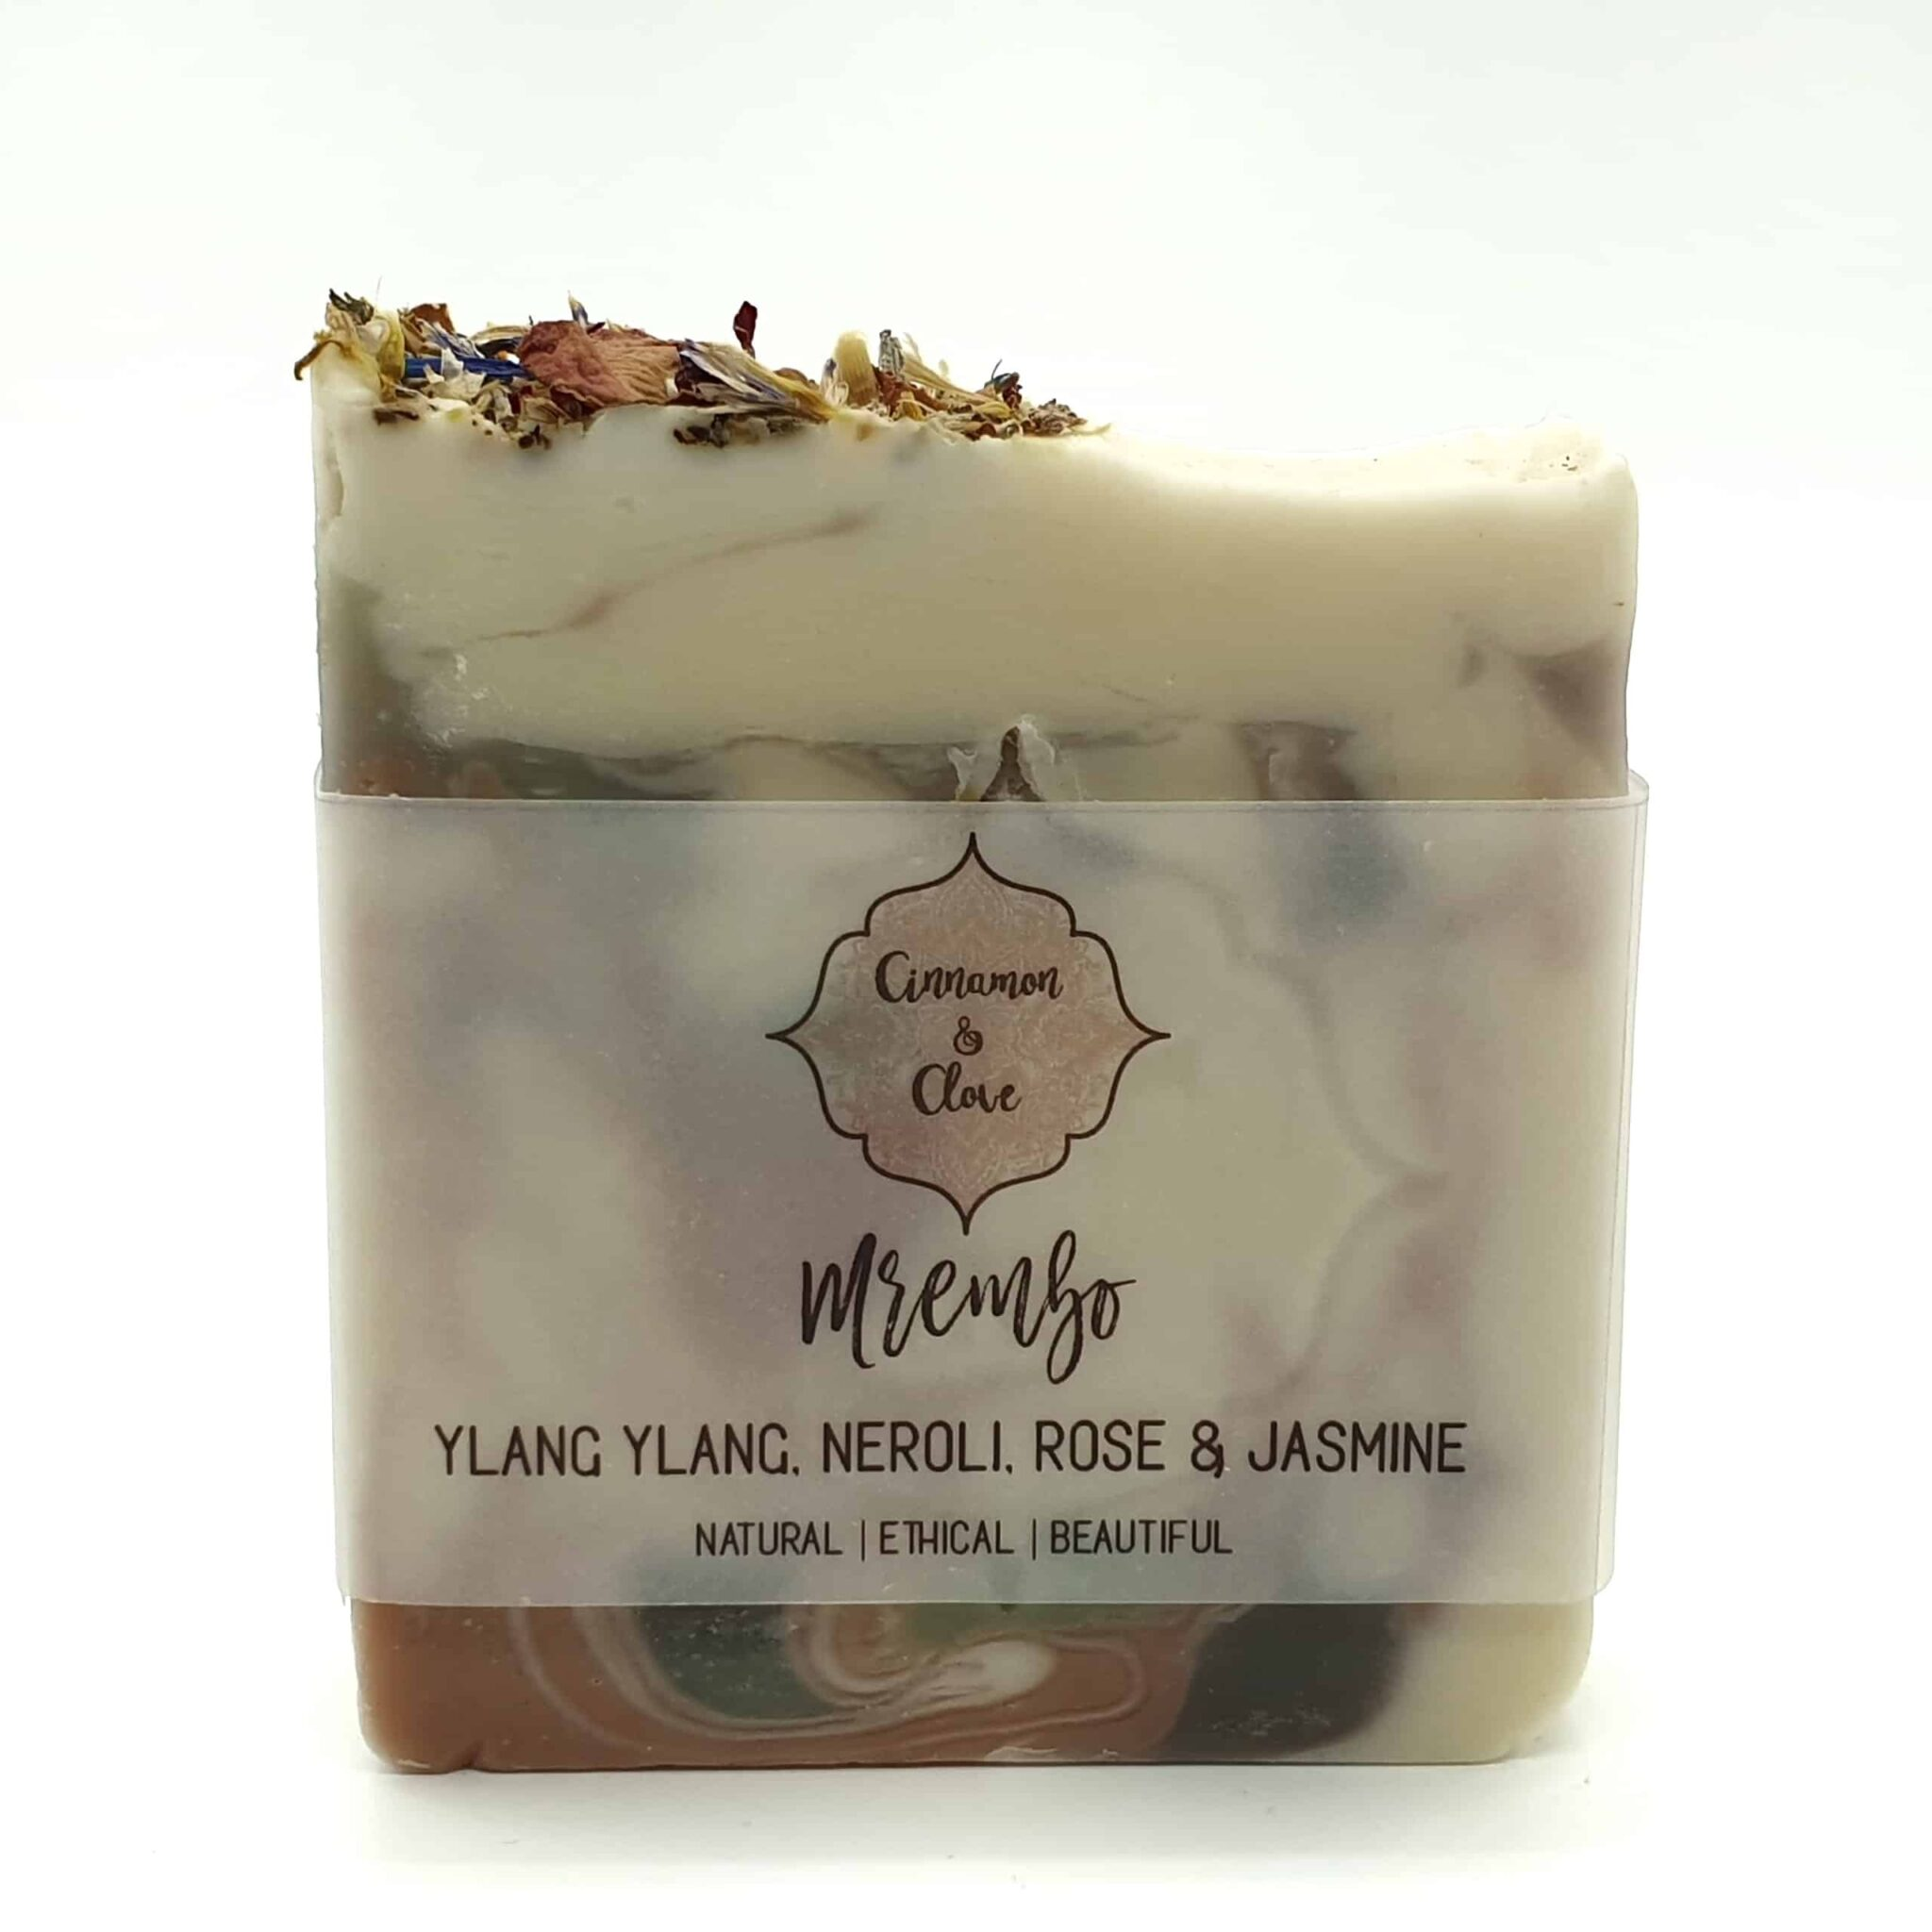 Mrembo – Handcrafted All Natural Artisan Floral Soap By Cinnamon And Clove (Fitzroy)